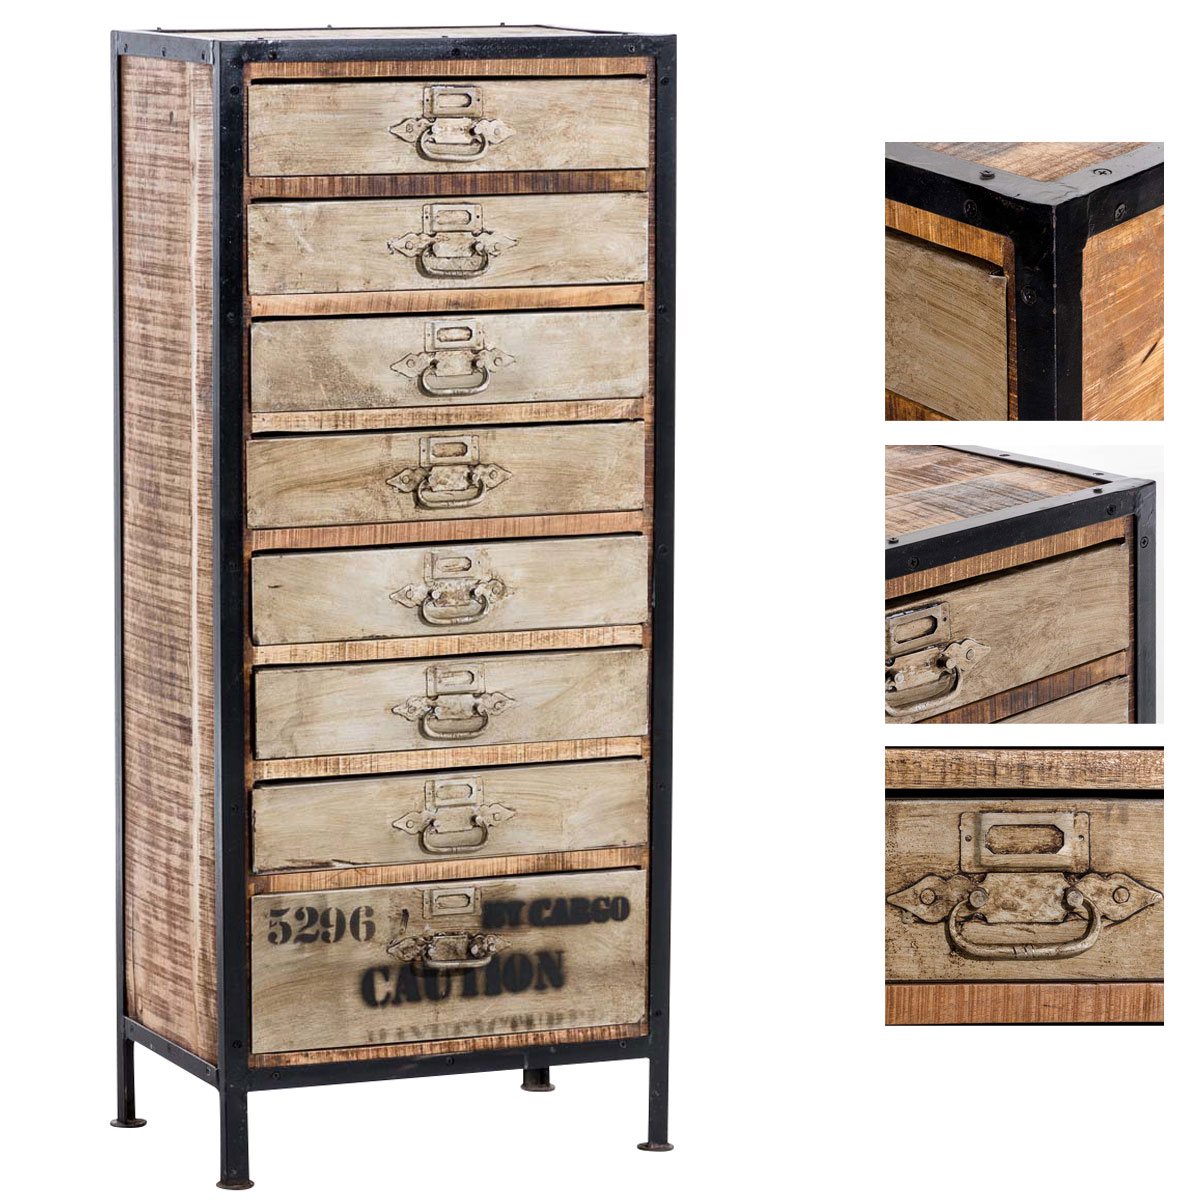 schrank bhakti kommode industrial design 8 schubladen holz. Black Bedroom Furniture Sets. Home Design Ideas